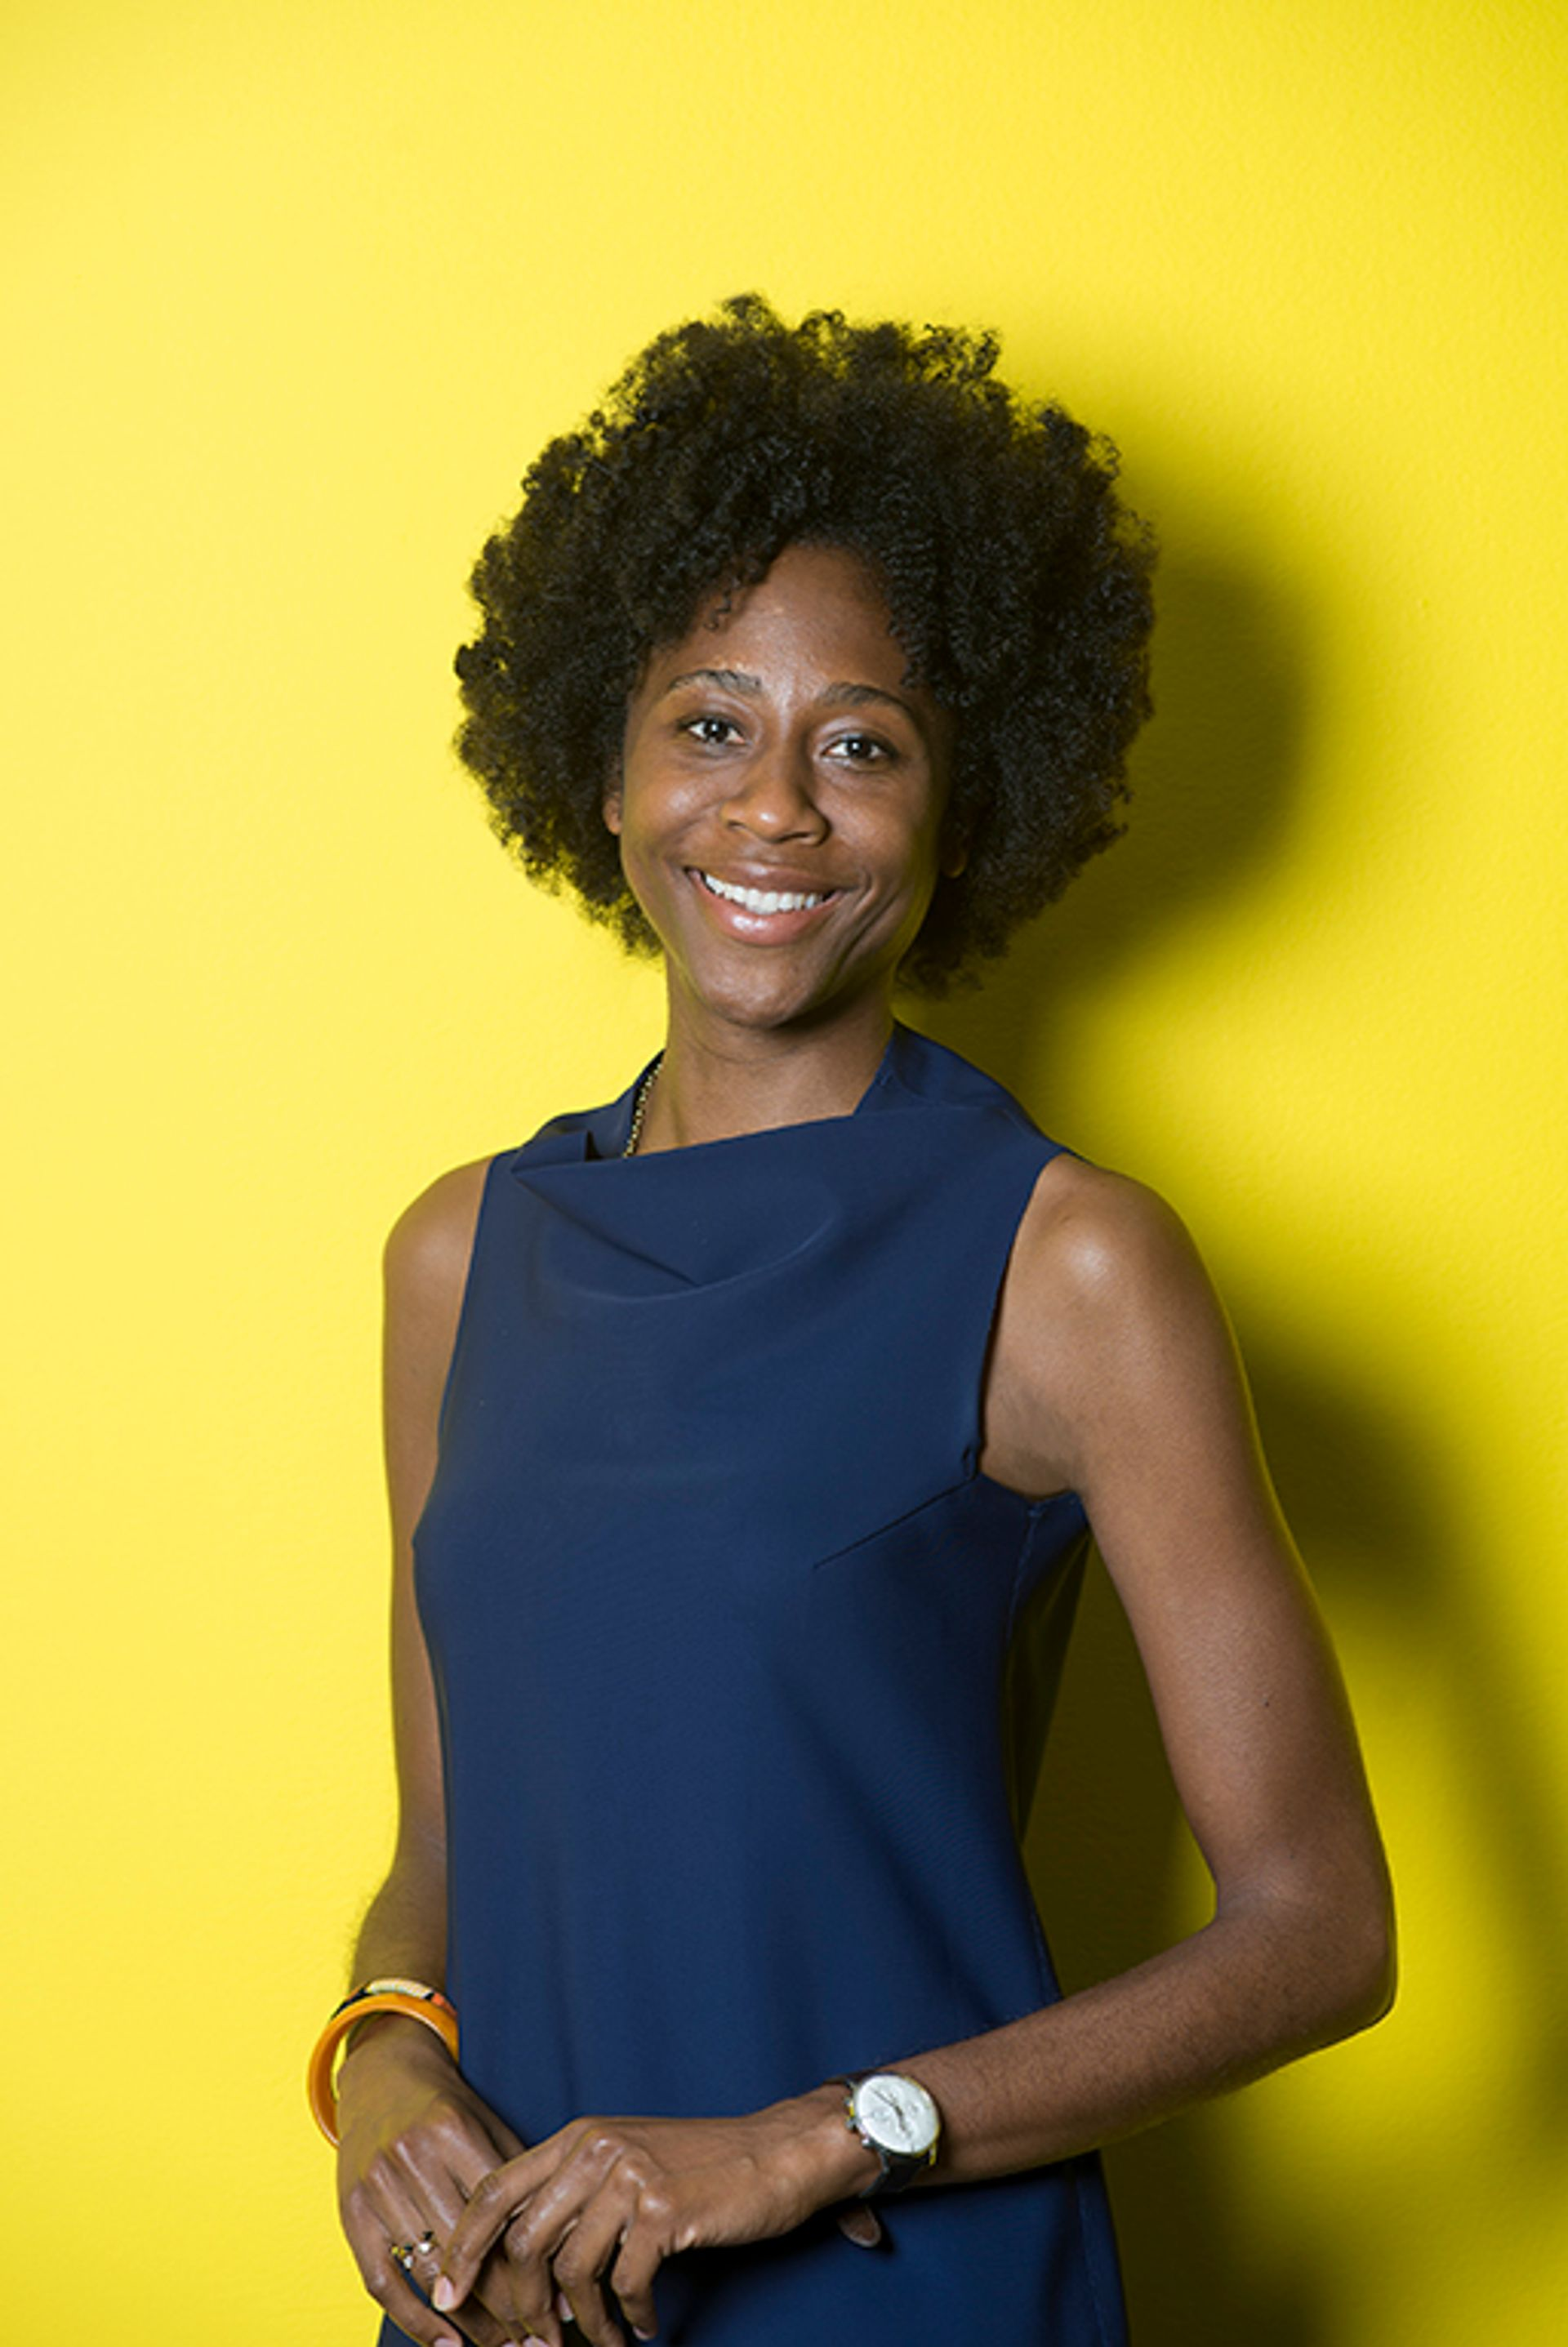 Naomi Beckwith, who will take over as deputy director and chief curator at the Solomon R. Guggenheim Museum in June Nathan Keay © MCA Chicago